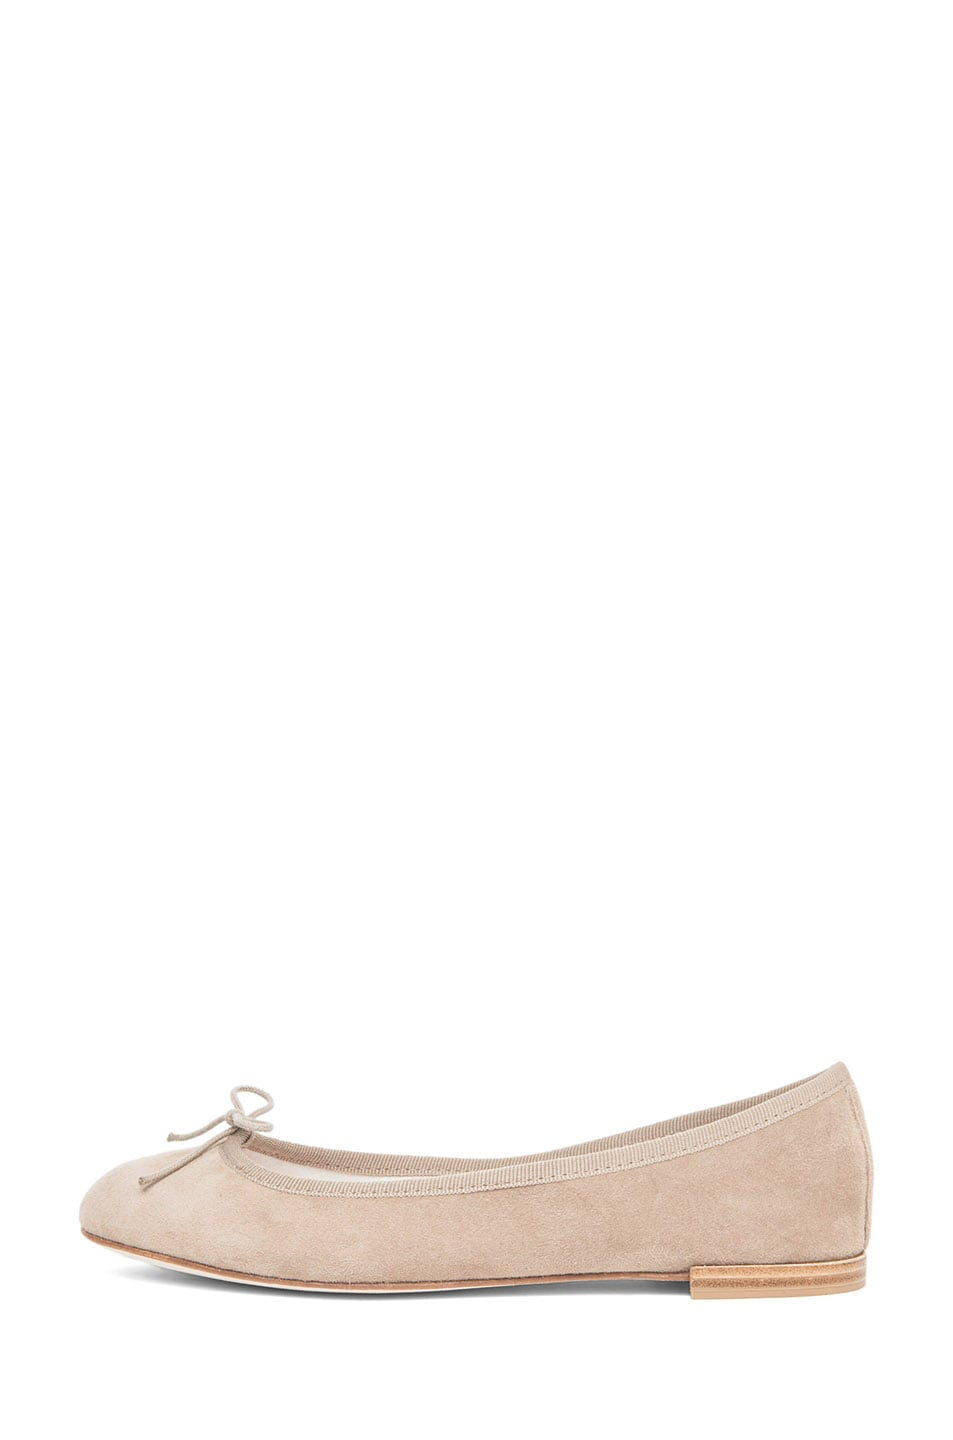 Image 1 of Repetto Goatskin Suede Flat in Taupe